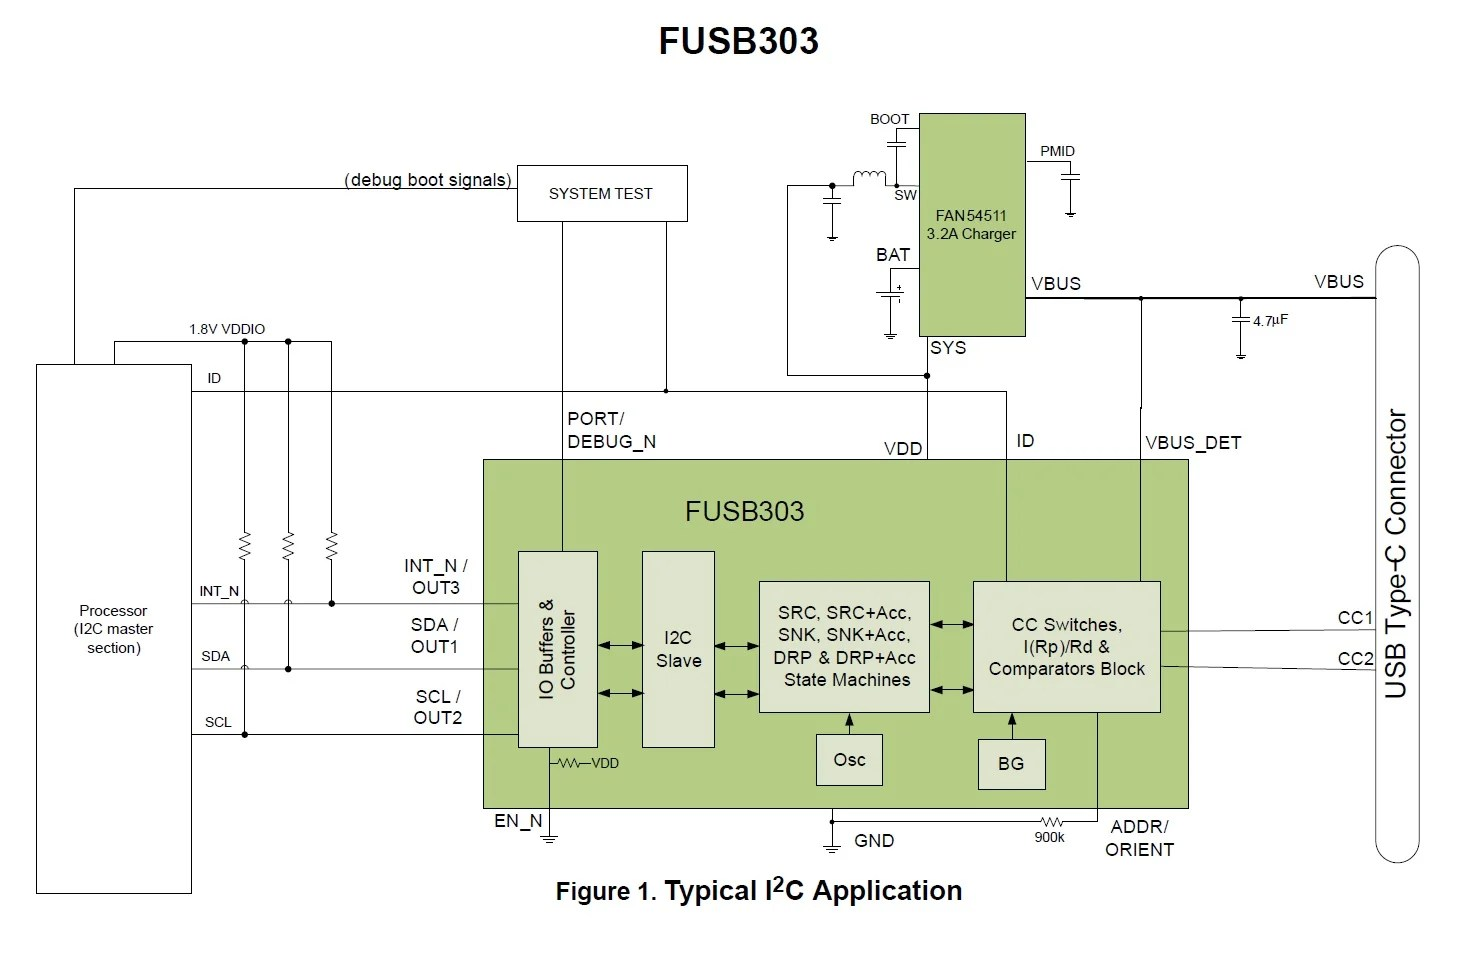 hight resolution of figure 3 the fusb303 allows you to use an i2c or gpio interface diagram taken from the datasheet